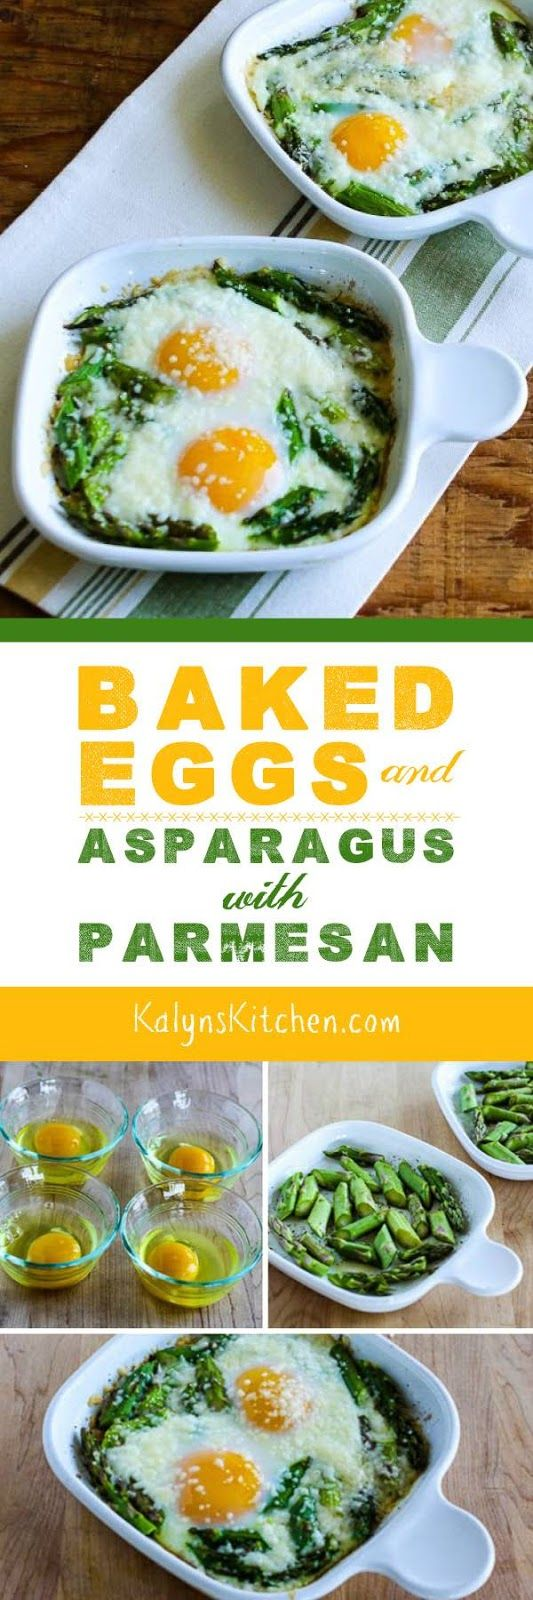 Baked Eggs And Asparagus With Parmesan Is A Tasty Breakfast Idea That S Low Carb Keto Glycemic Meatless Gluten Free South Beach T Friendly